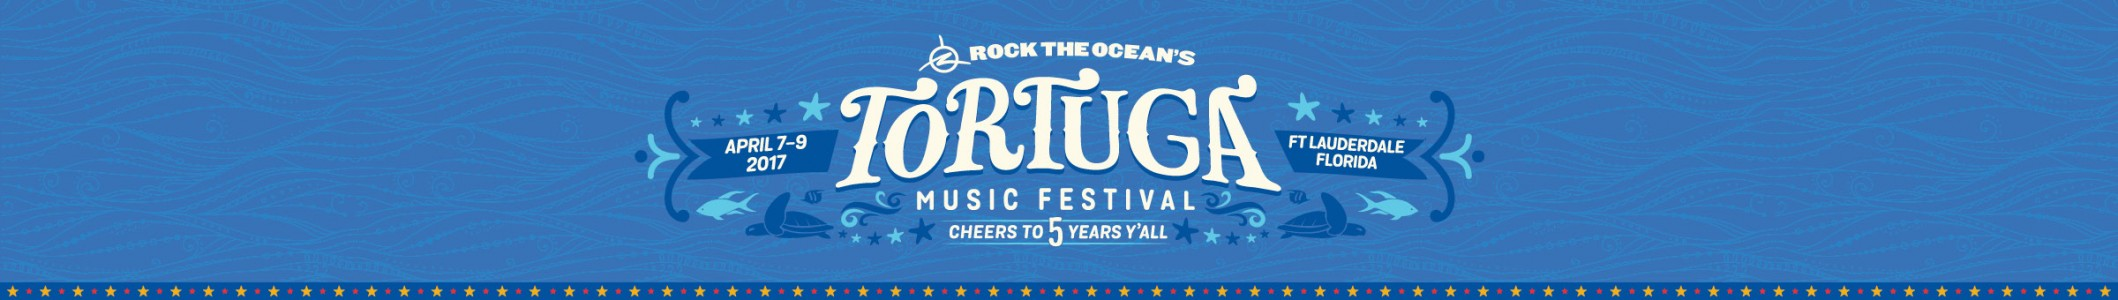 Tortuga Music Festival 2017 Travel Packages